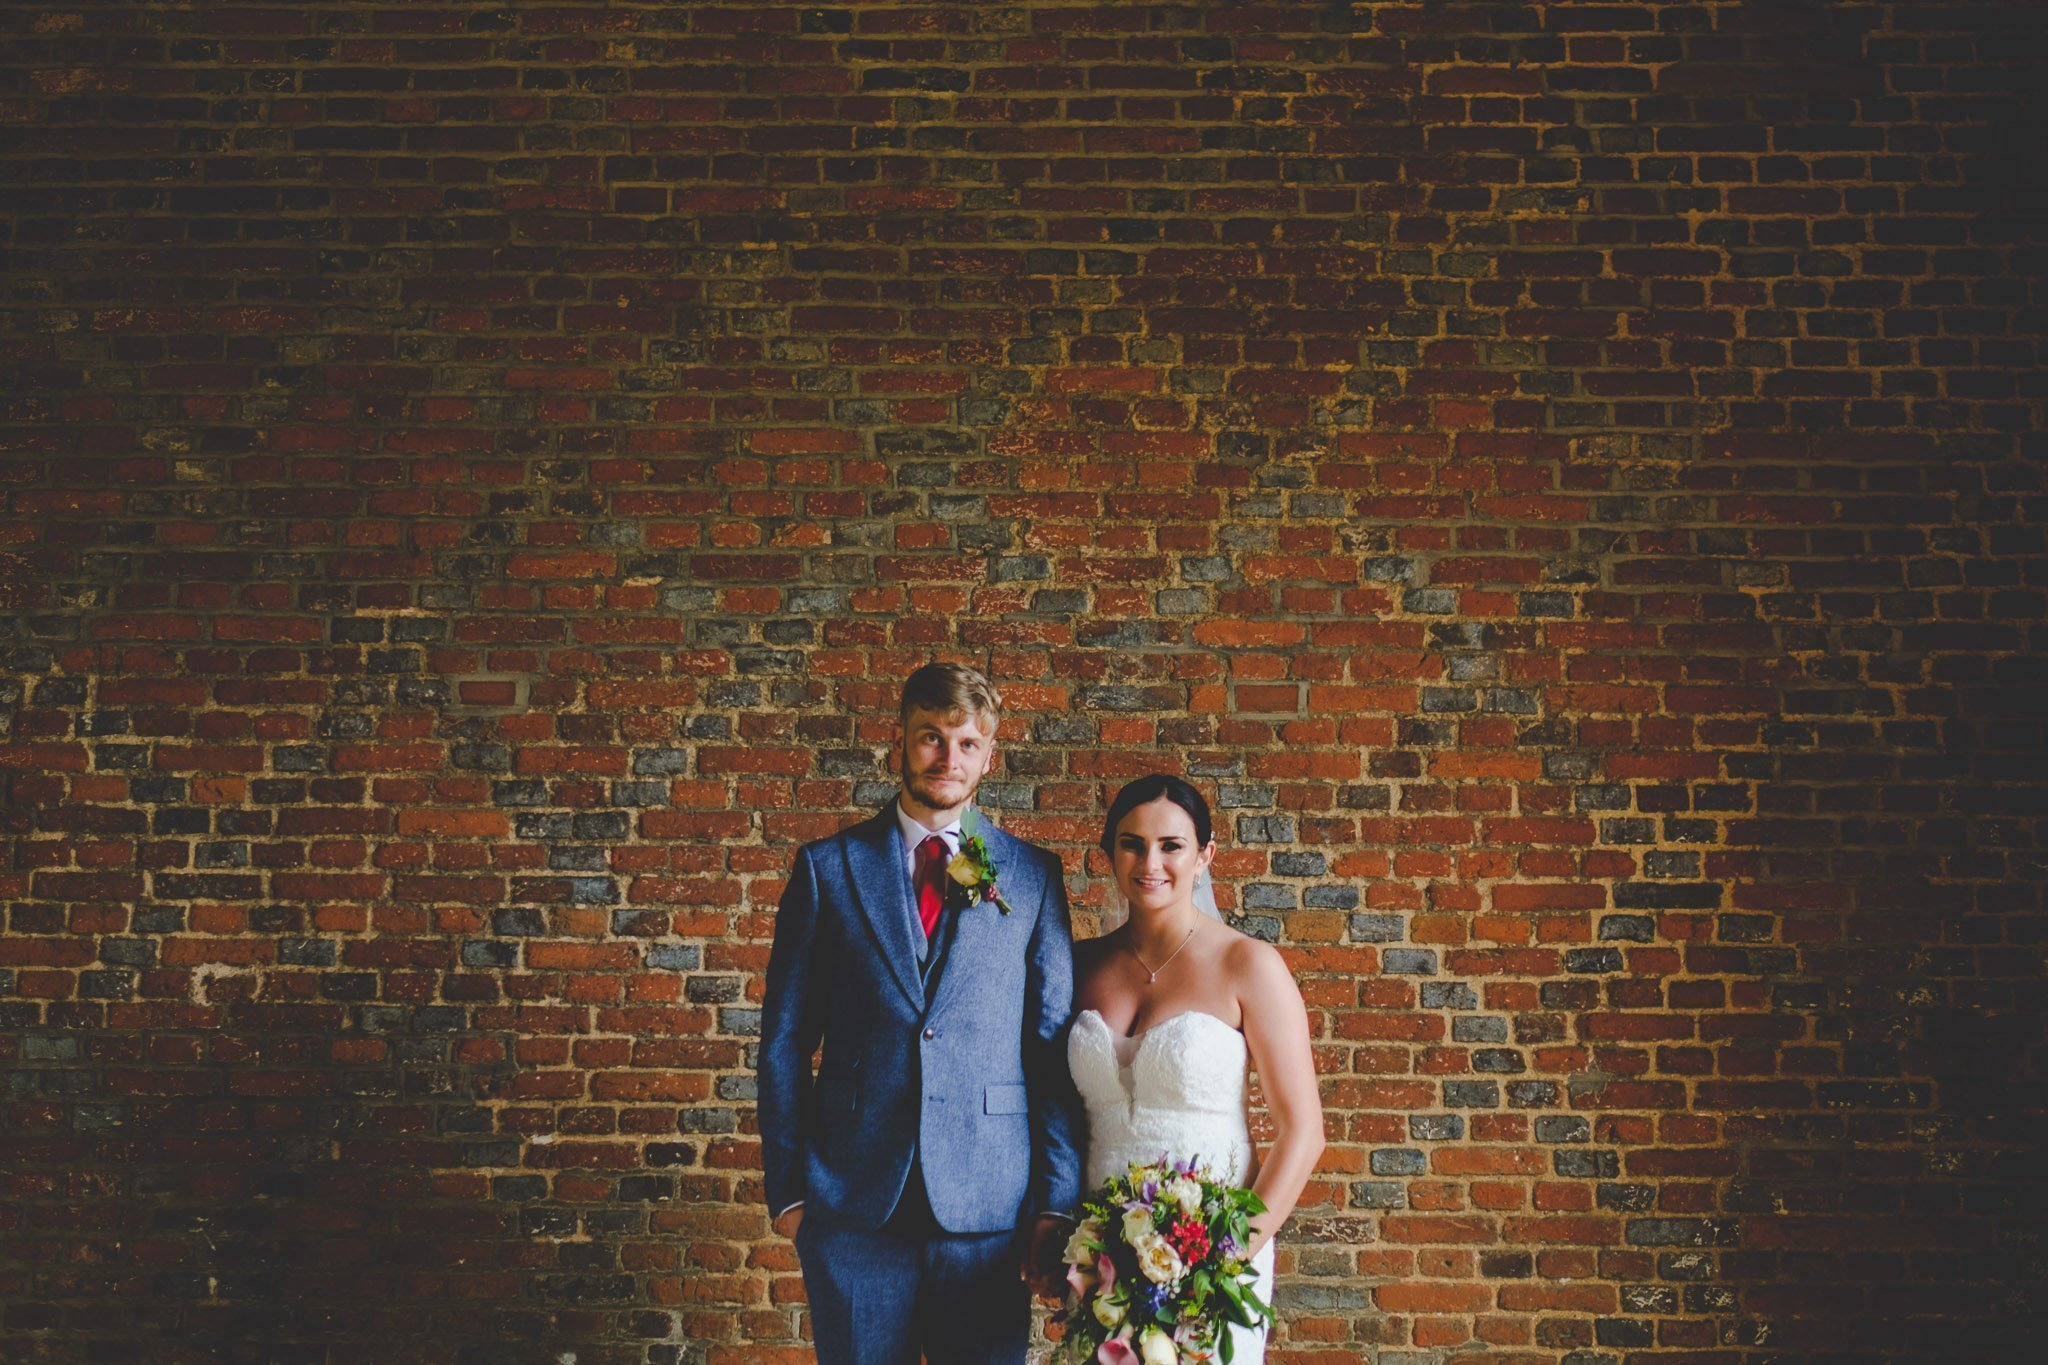 Creative portrait of a bride & groom in front of a brick wall at Leez Priory wedding. Photography by thatthingyoupluck.